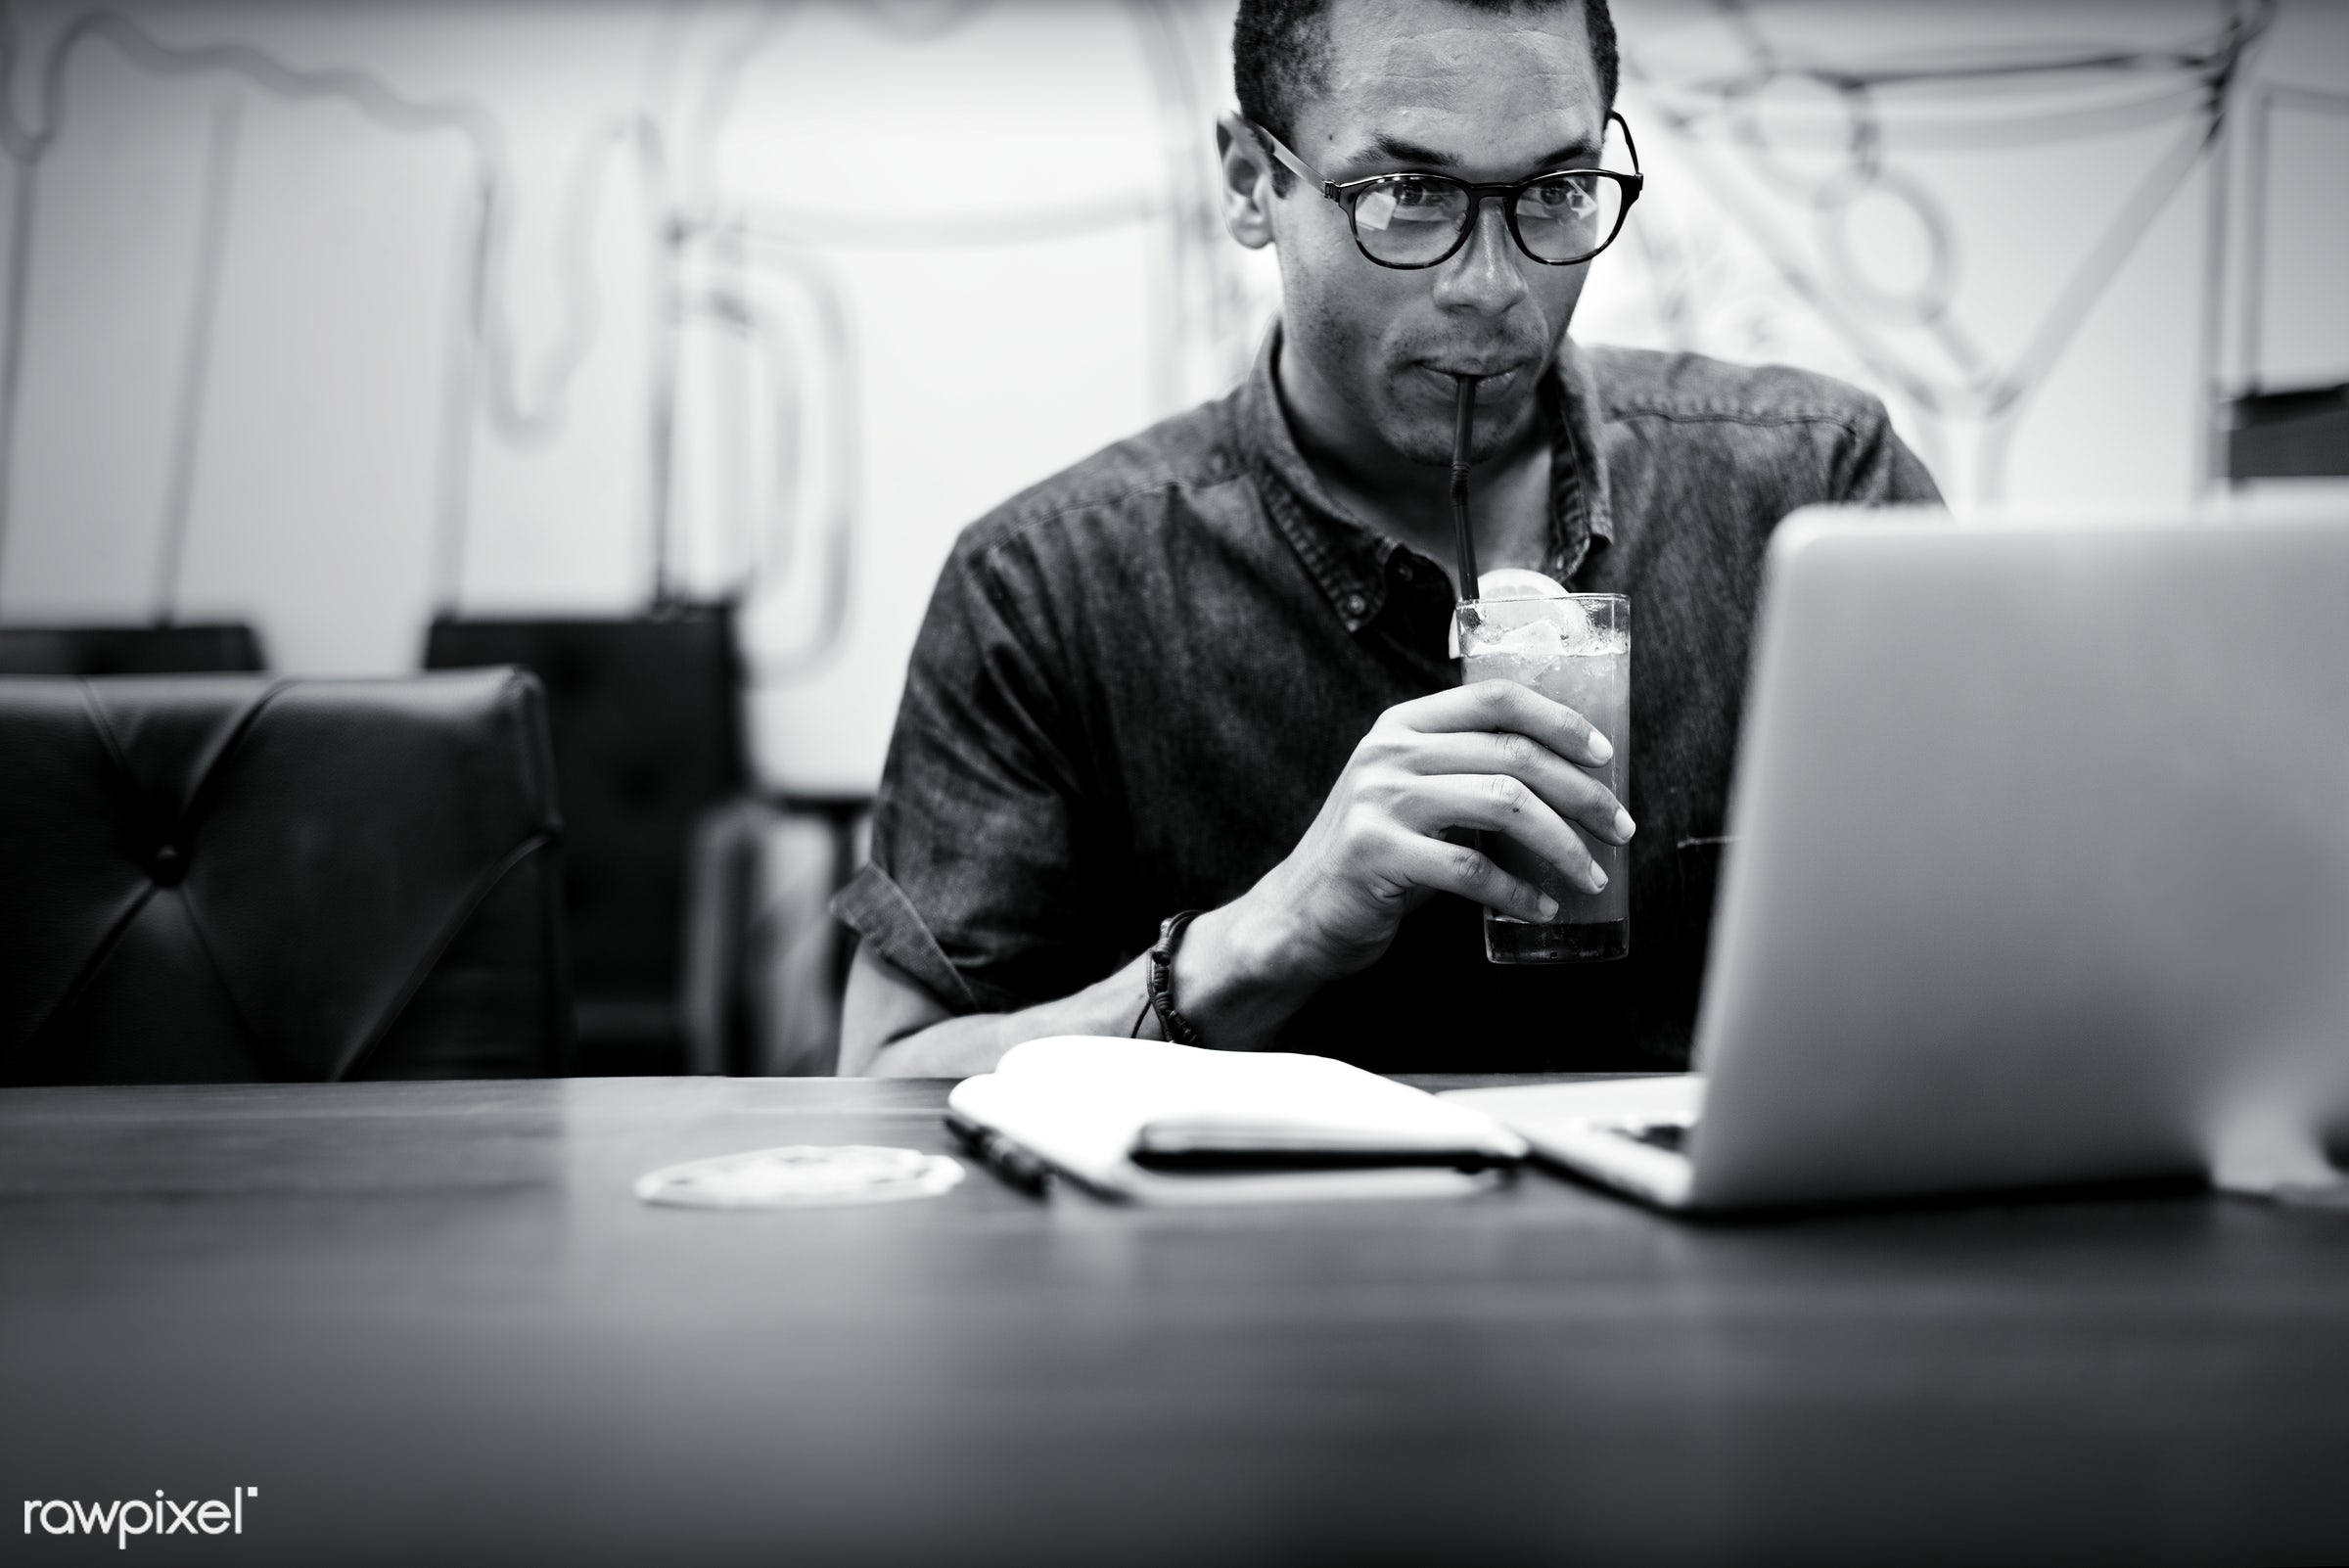 african, analyzing, black, black and white, break, browsing, business, businessman, cafe, casual, communication, computer,...